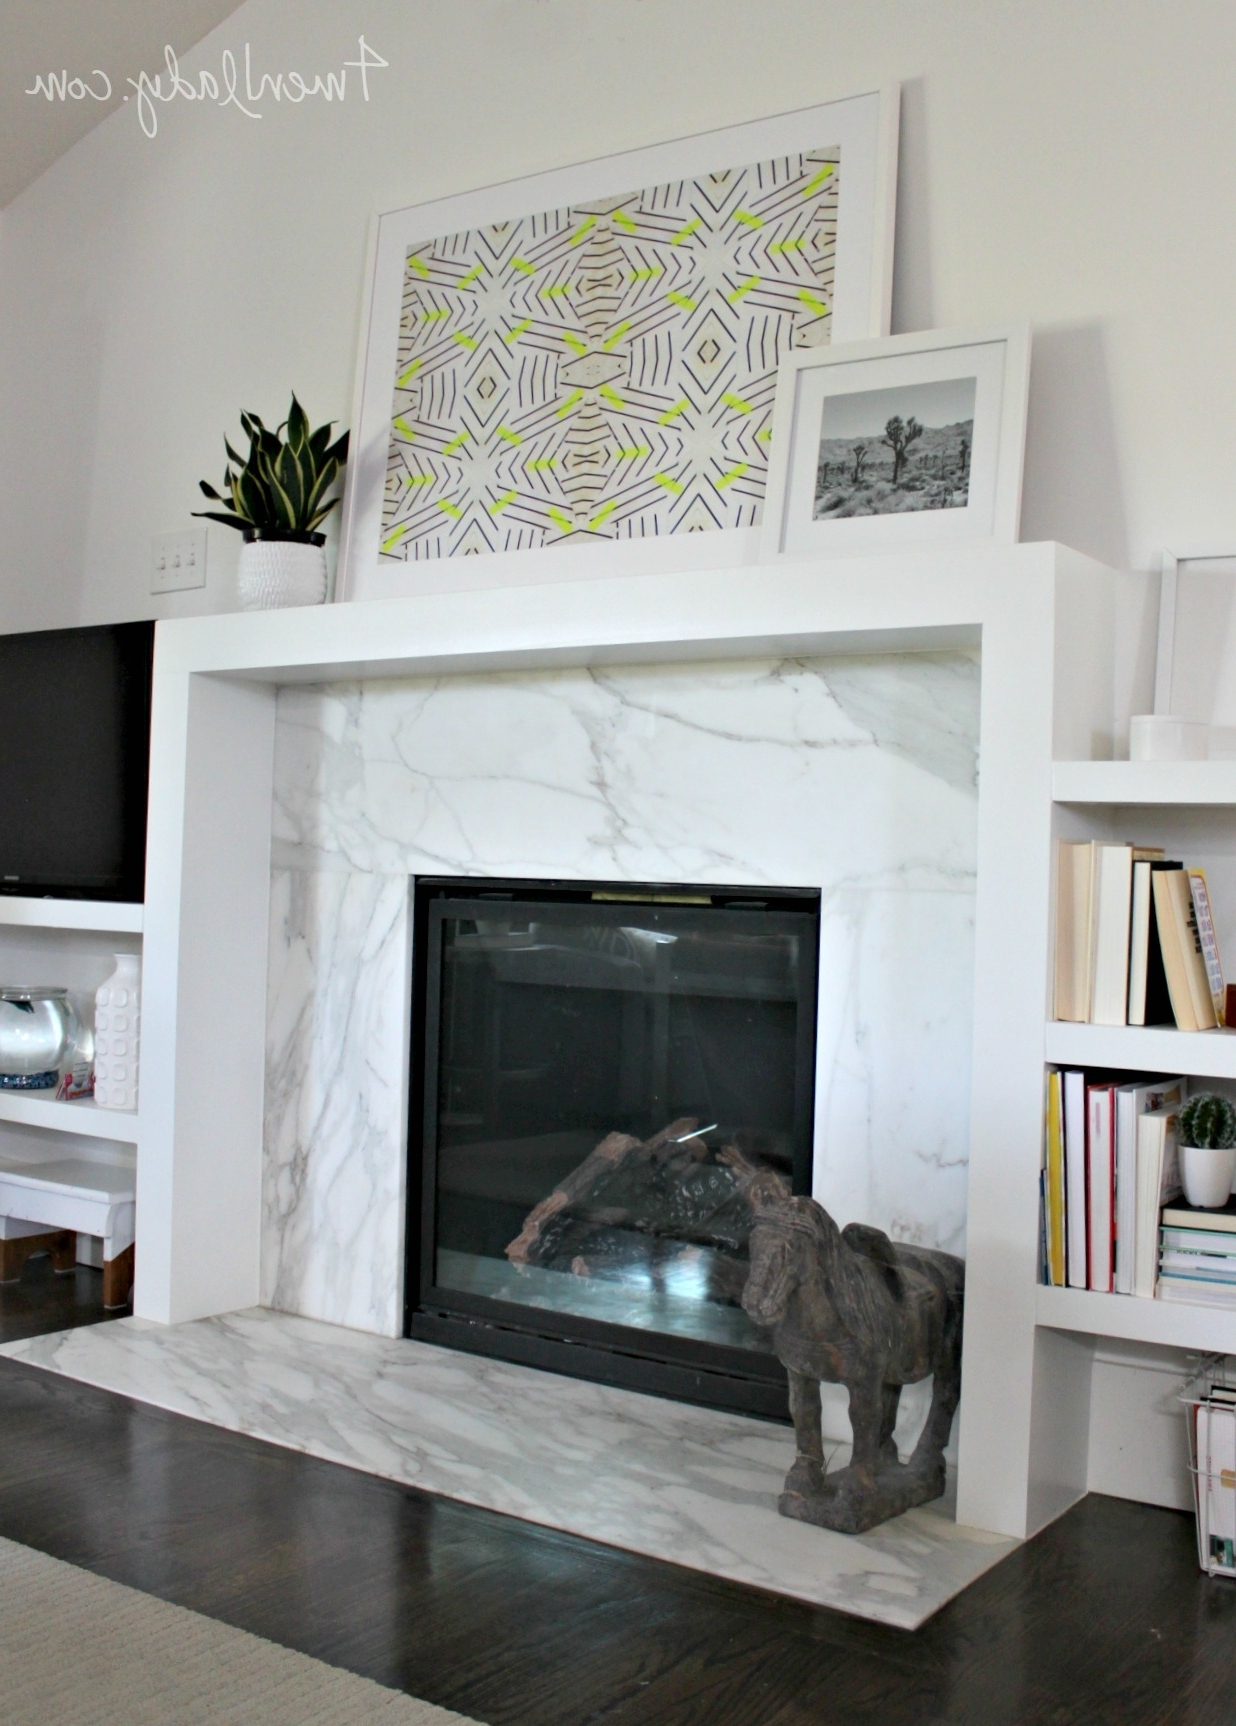 New Art For My Living Room From Artfully Walls (View 4 of 15)